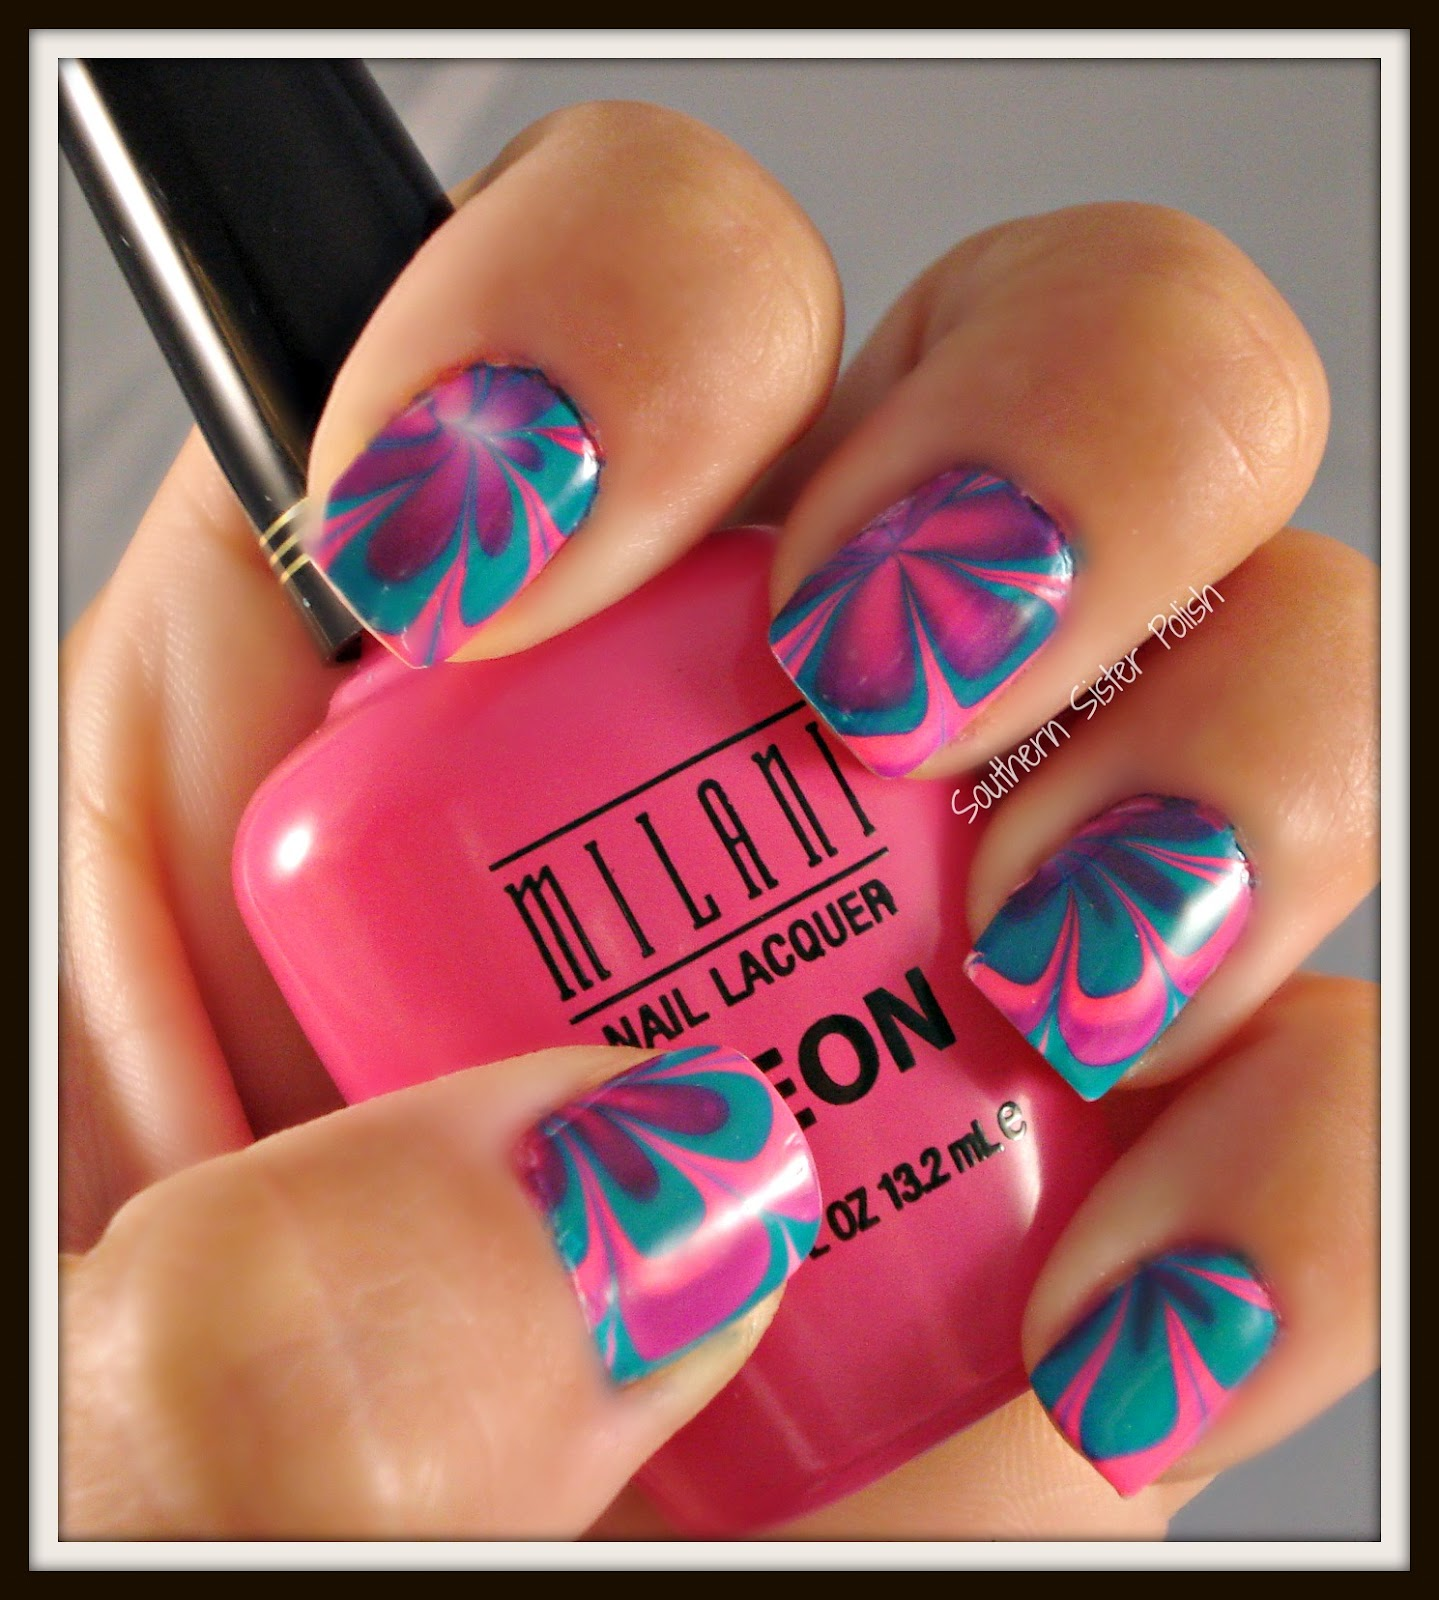 like the tutorial??? Want more water marble tutorials or nail art